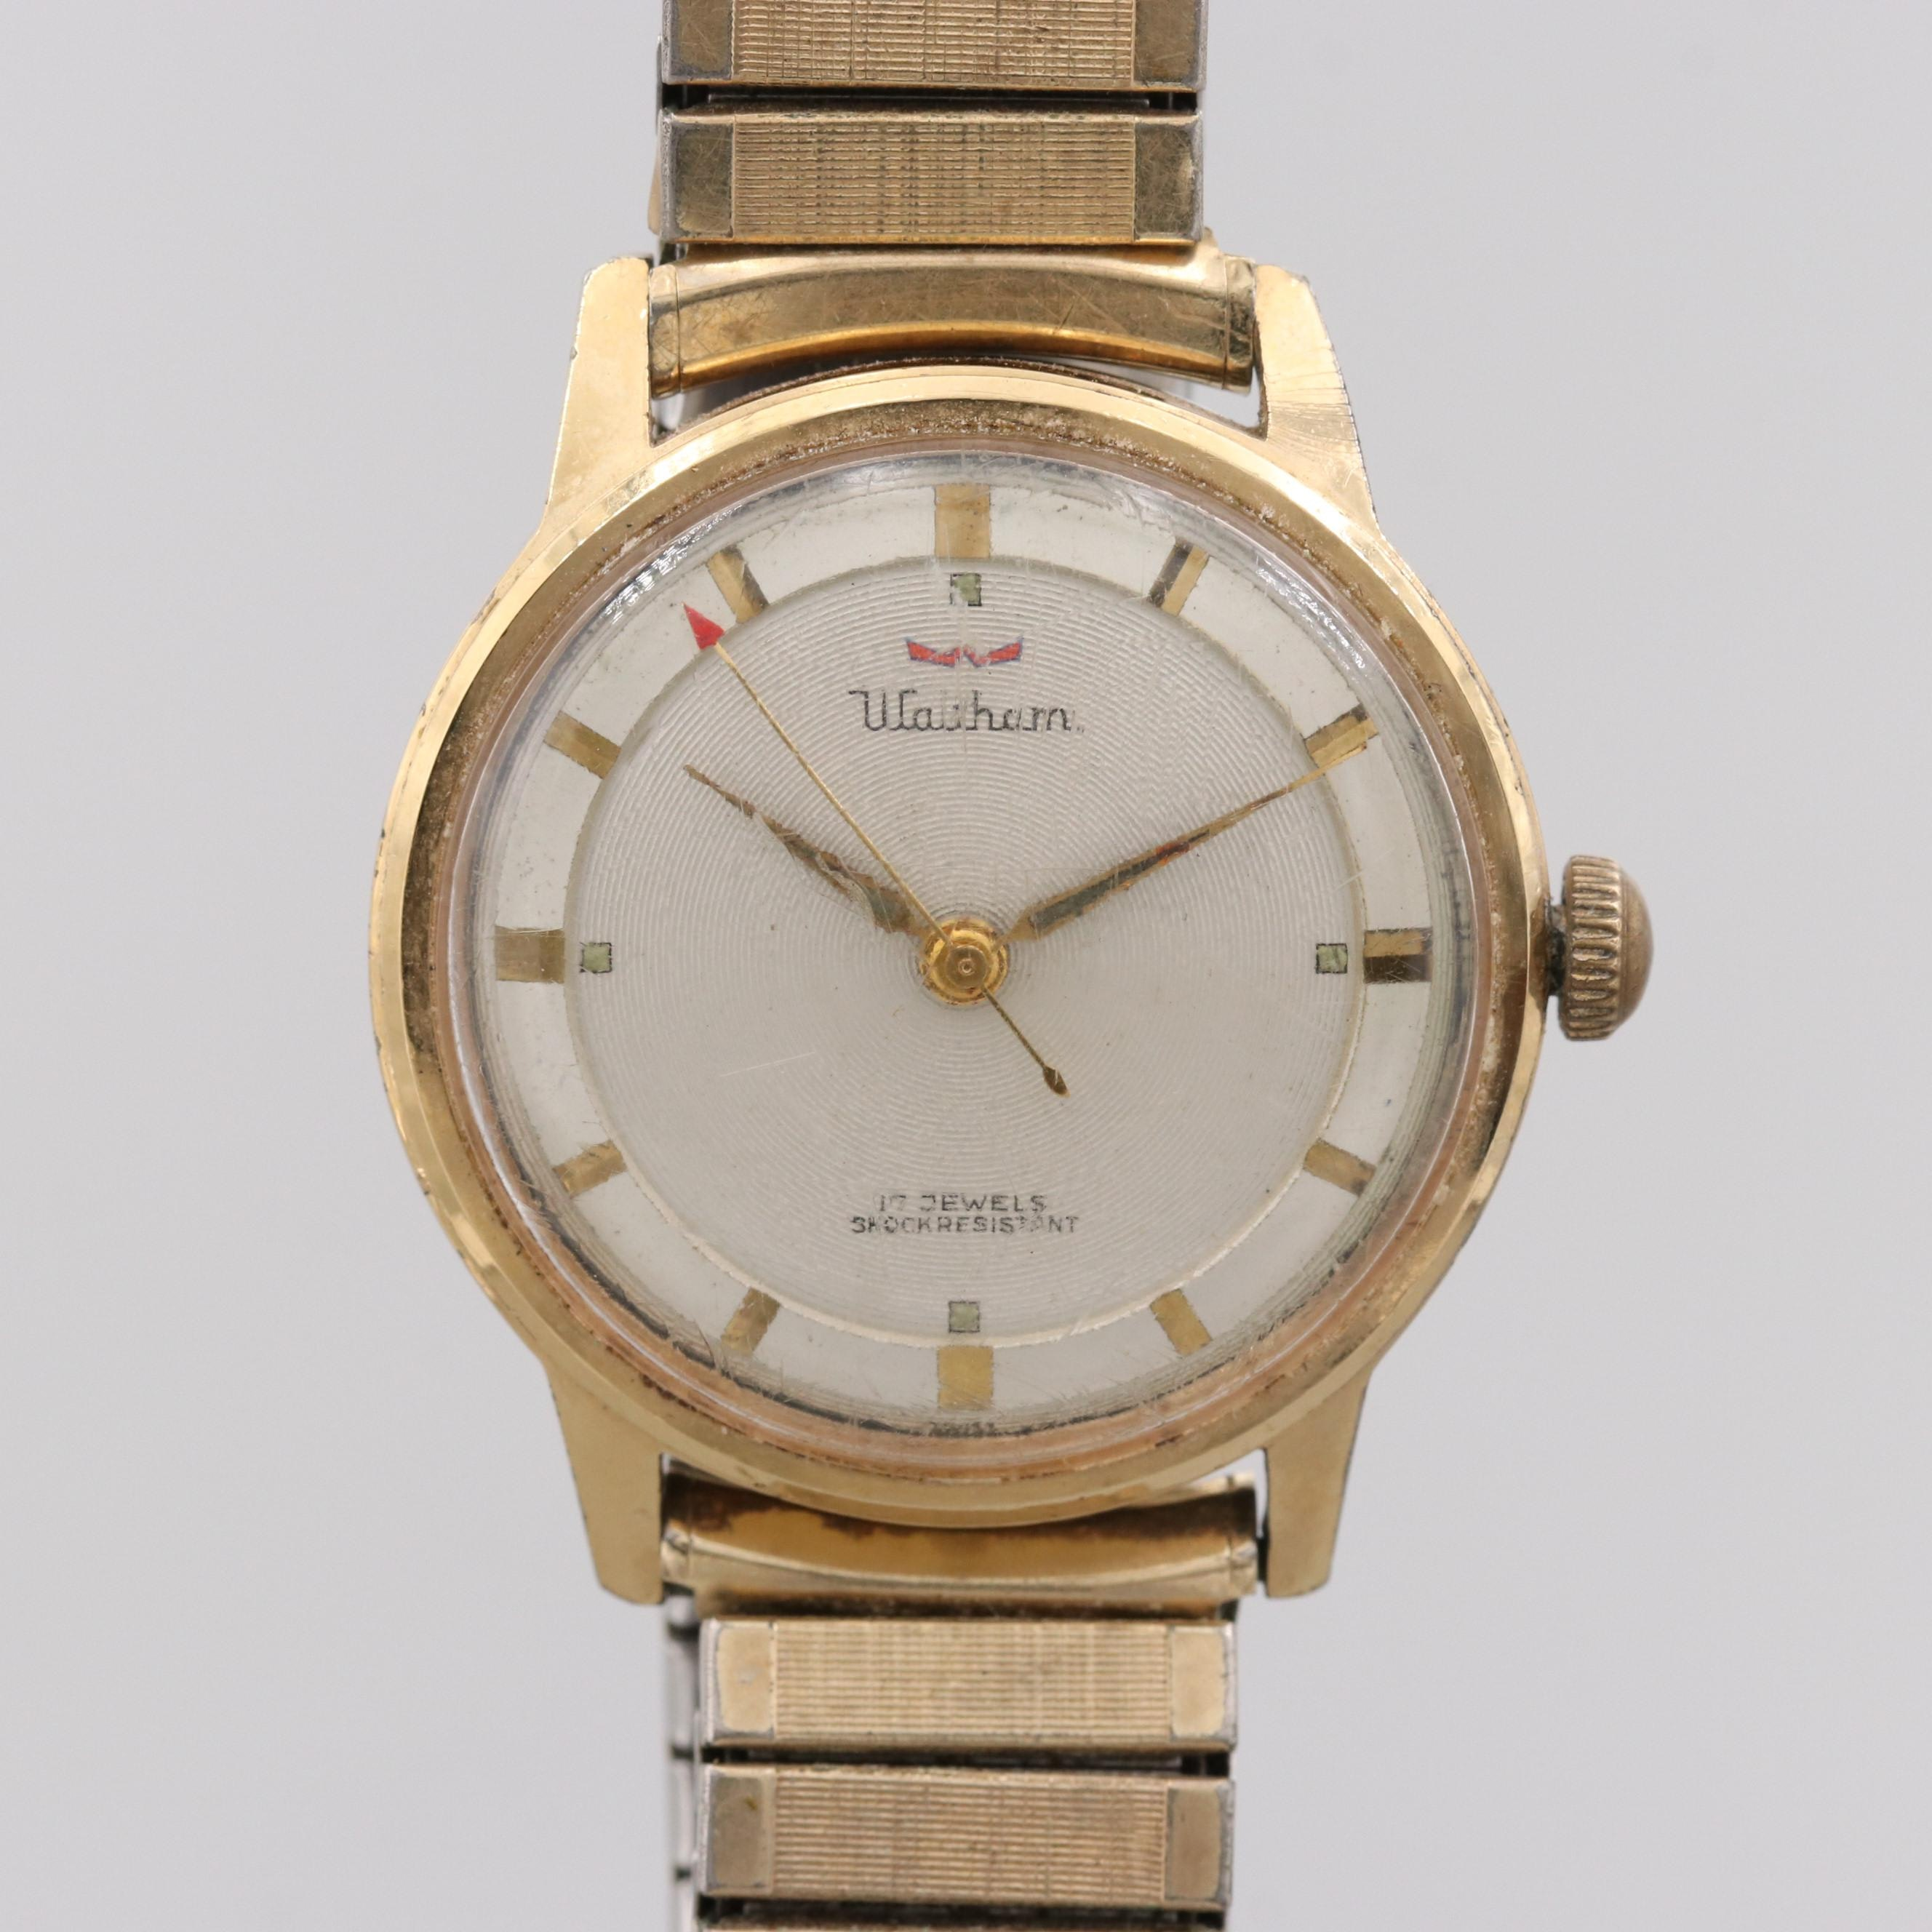 Waltham Gold Electroplated Stainless Steel 17 Jewels Stem Wind Wristwatch